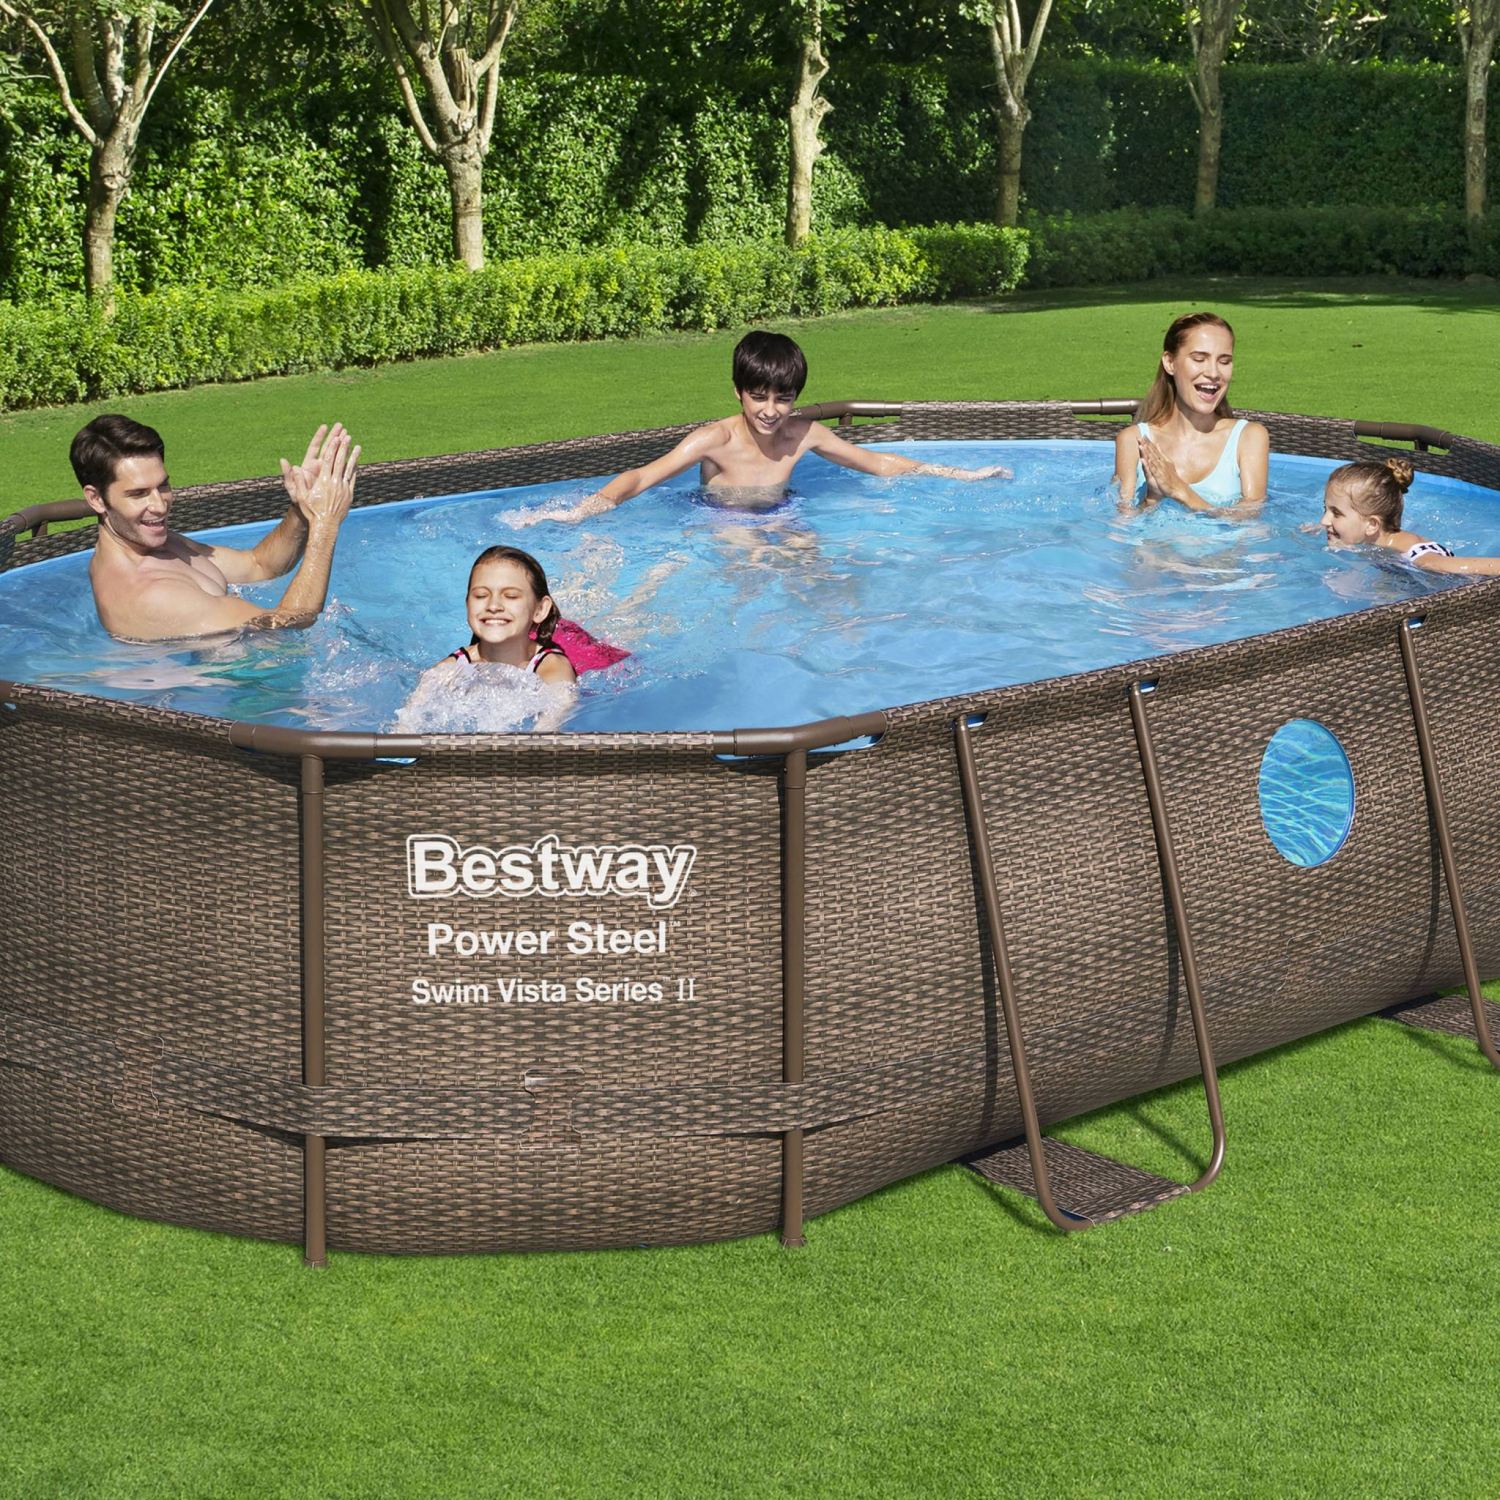 Piscine Tubulaire Bestway - Aventurine 15M² Imitation tout Amenagement Piscine Tubulaire